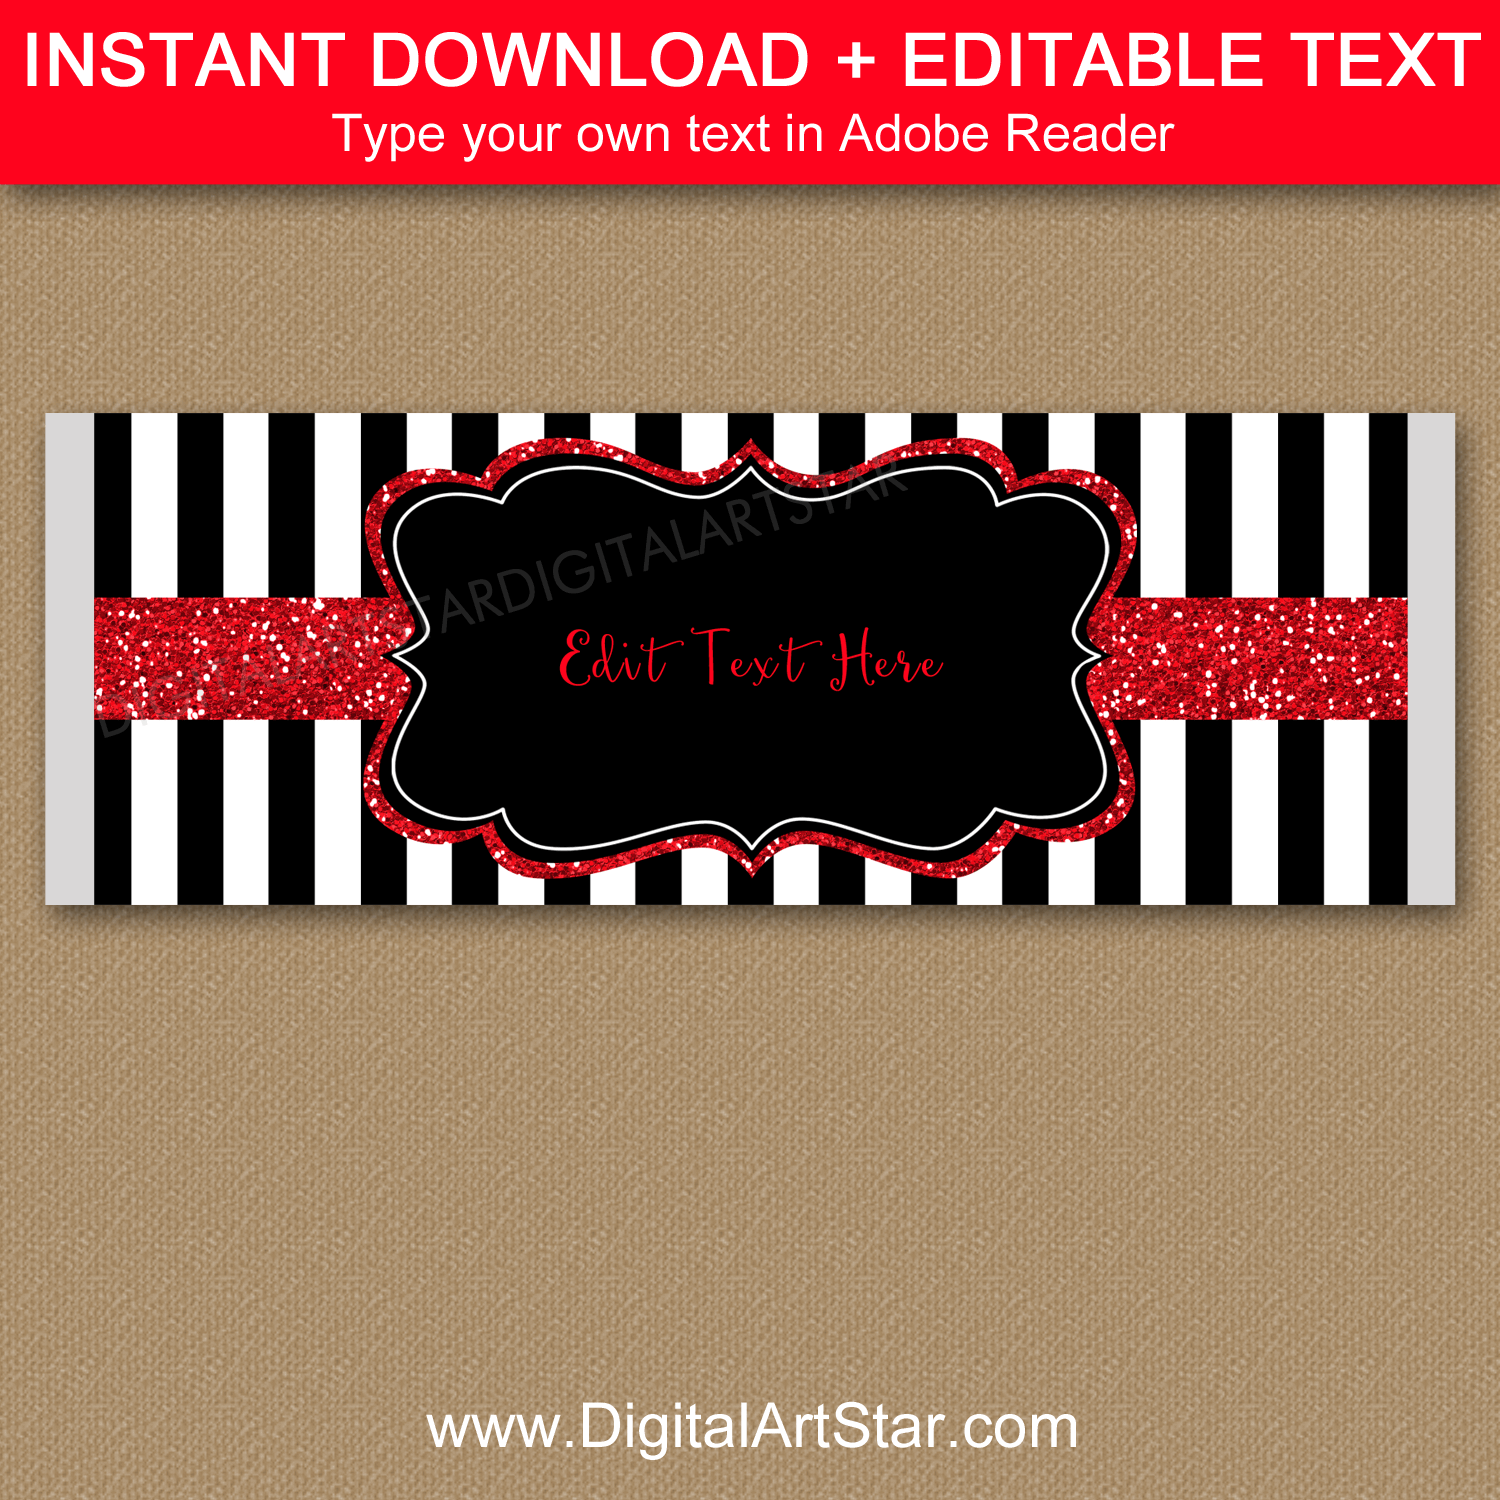 Black and White Striped Candy Bar Template with Red Glitter Accents